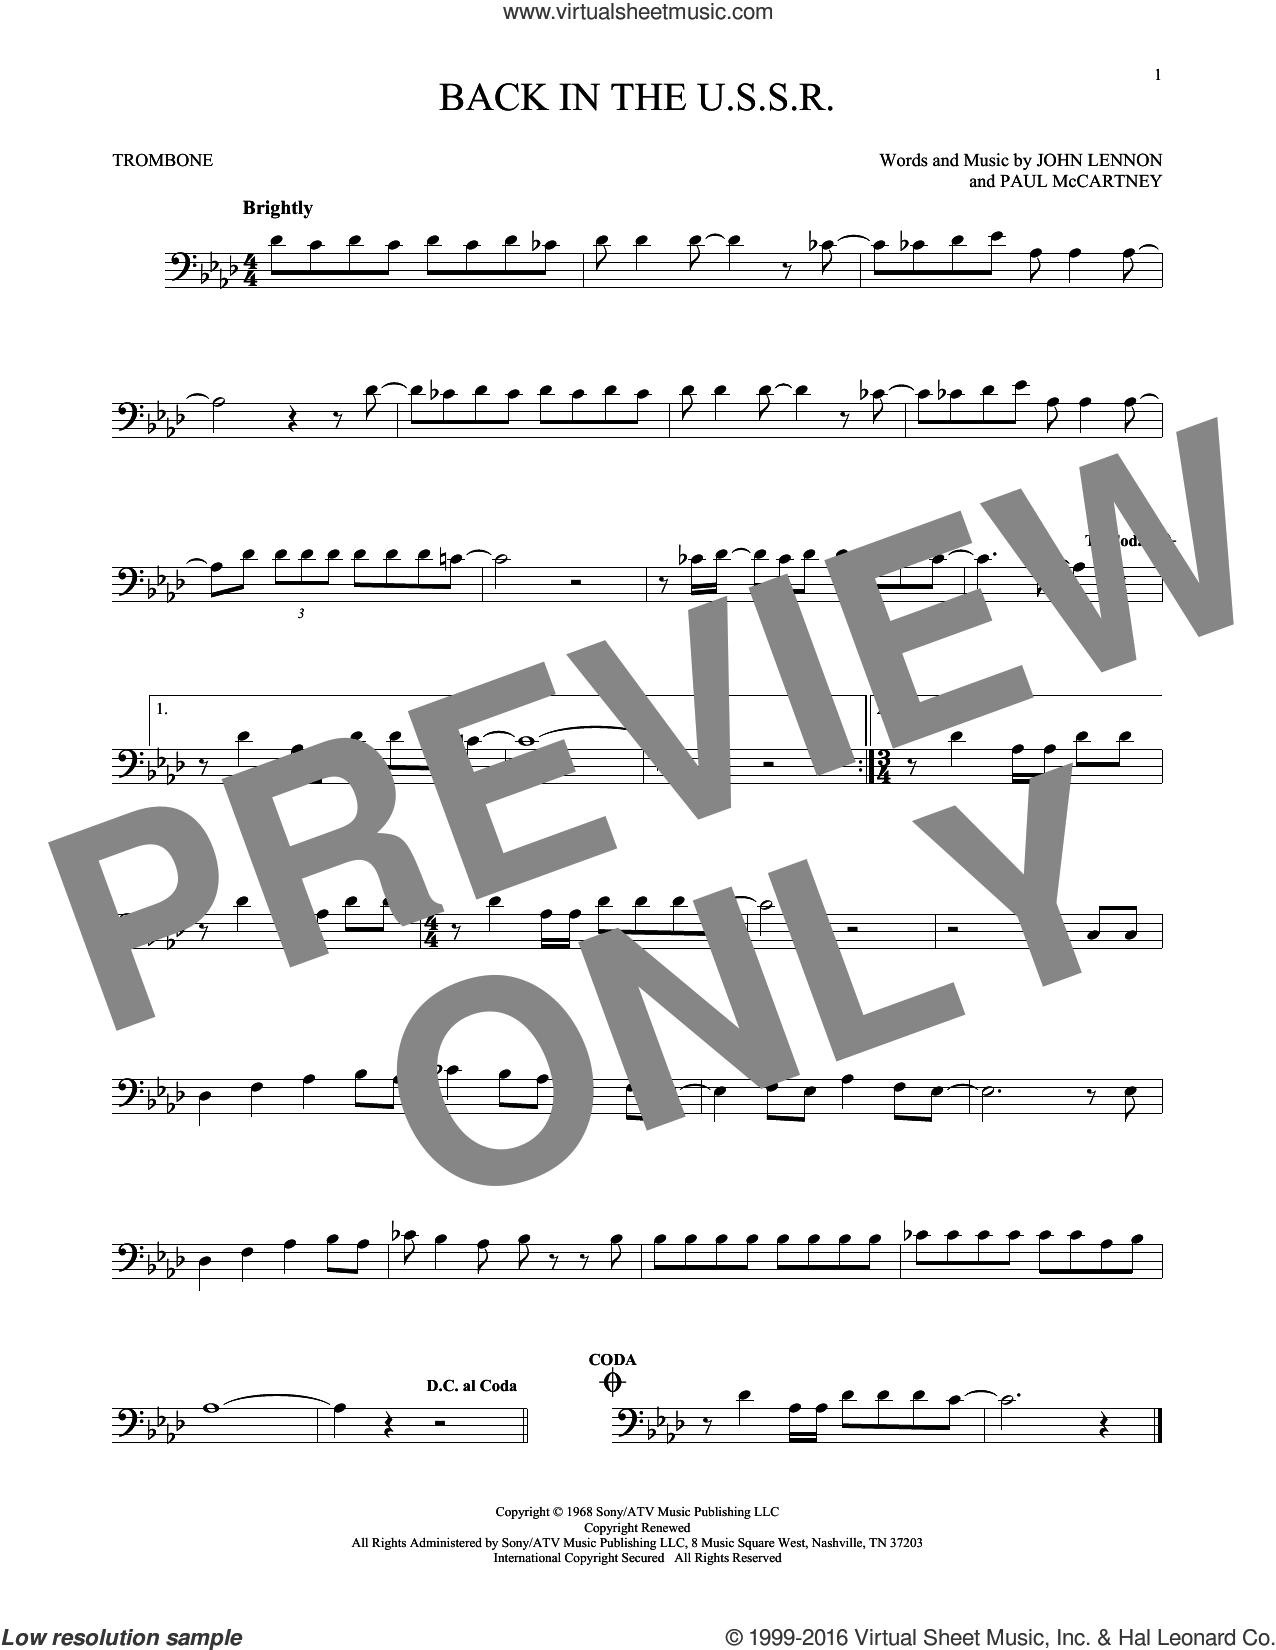 Back In The U.S.S.R. sheet music for trombone solo by The Beatles, John Lennon and Paul McCartney. Score Image Preview.